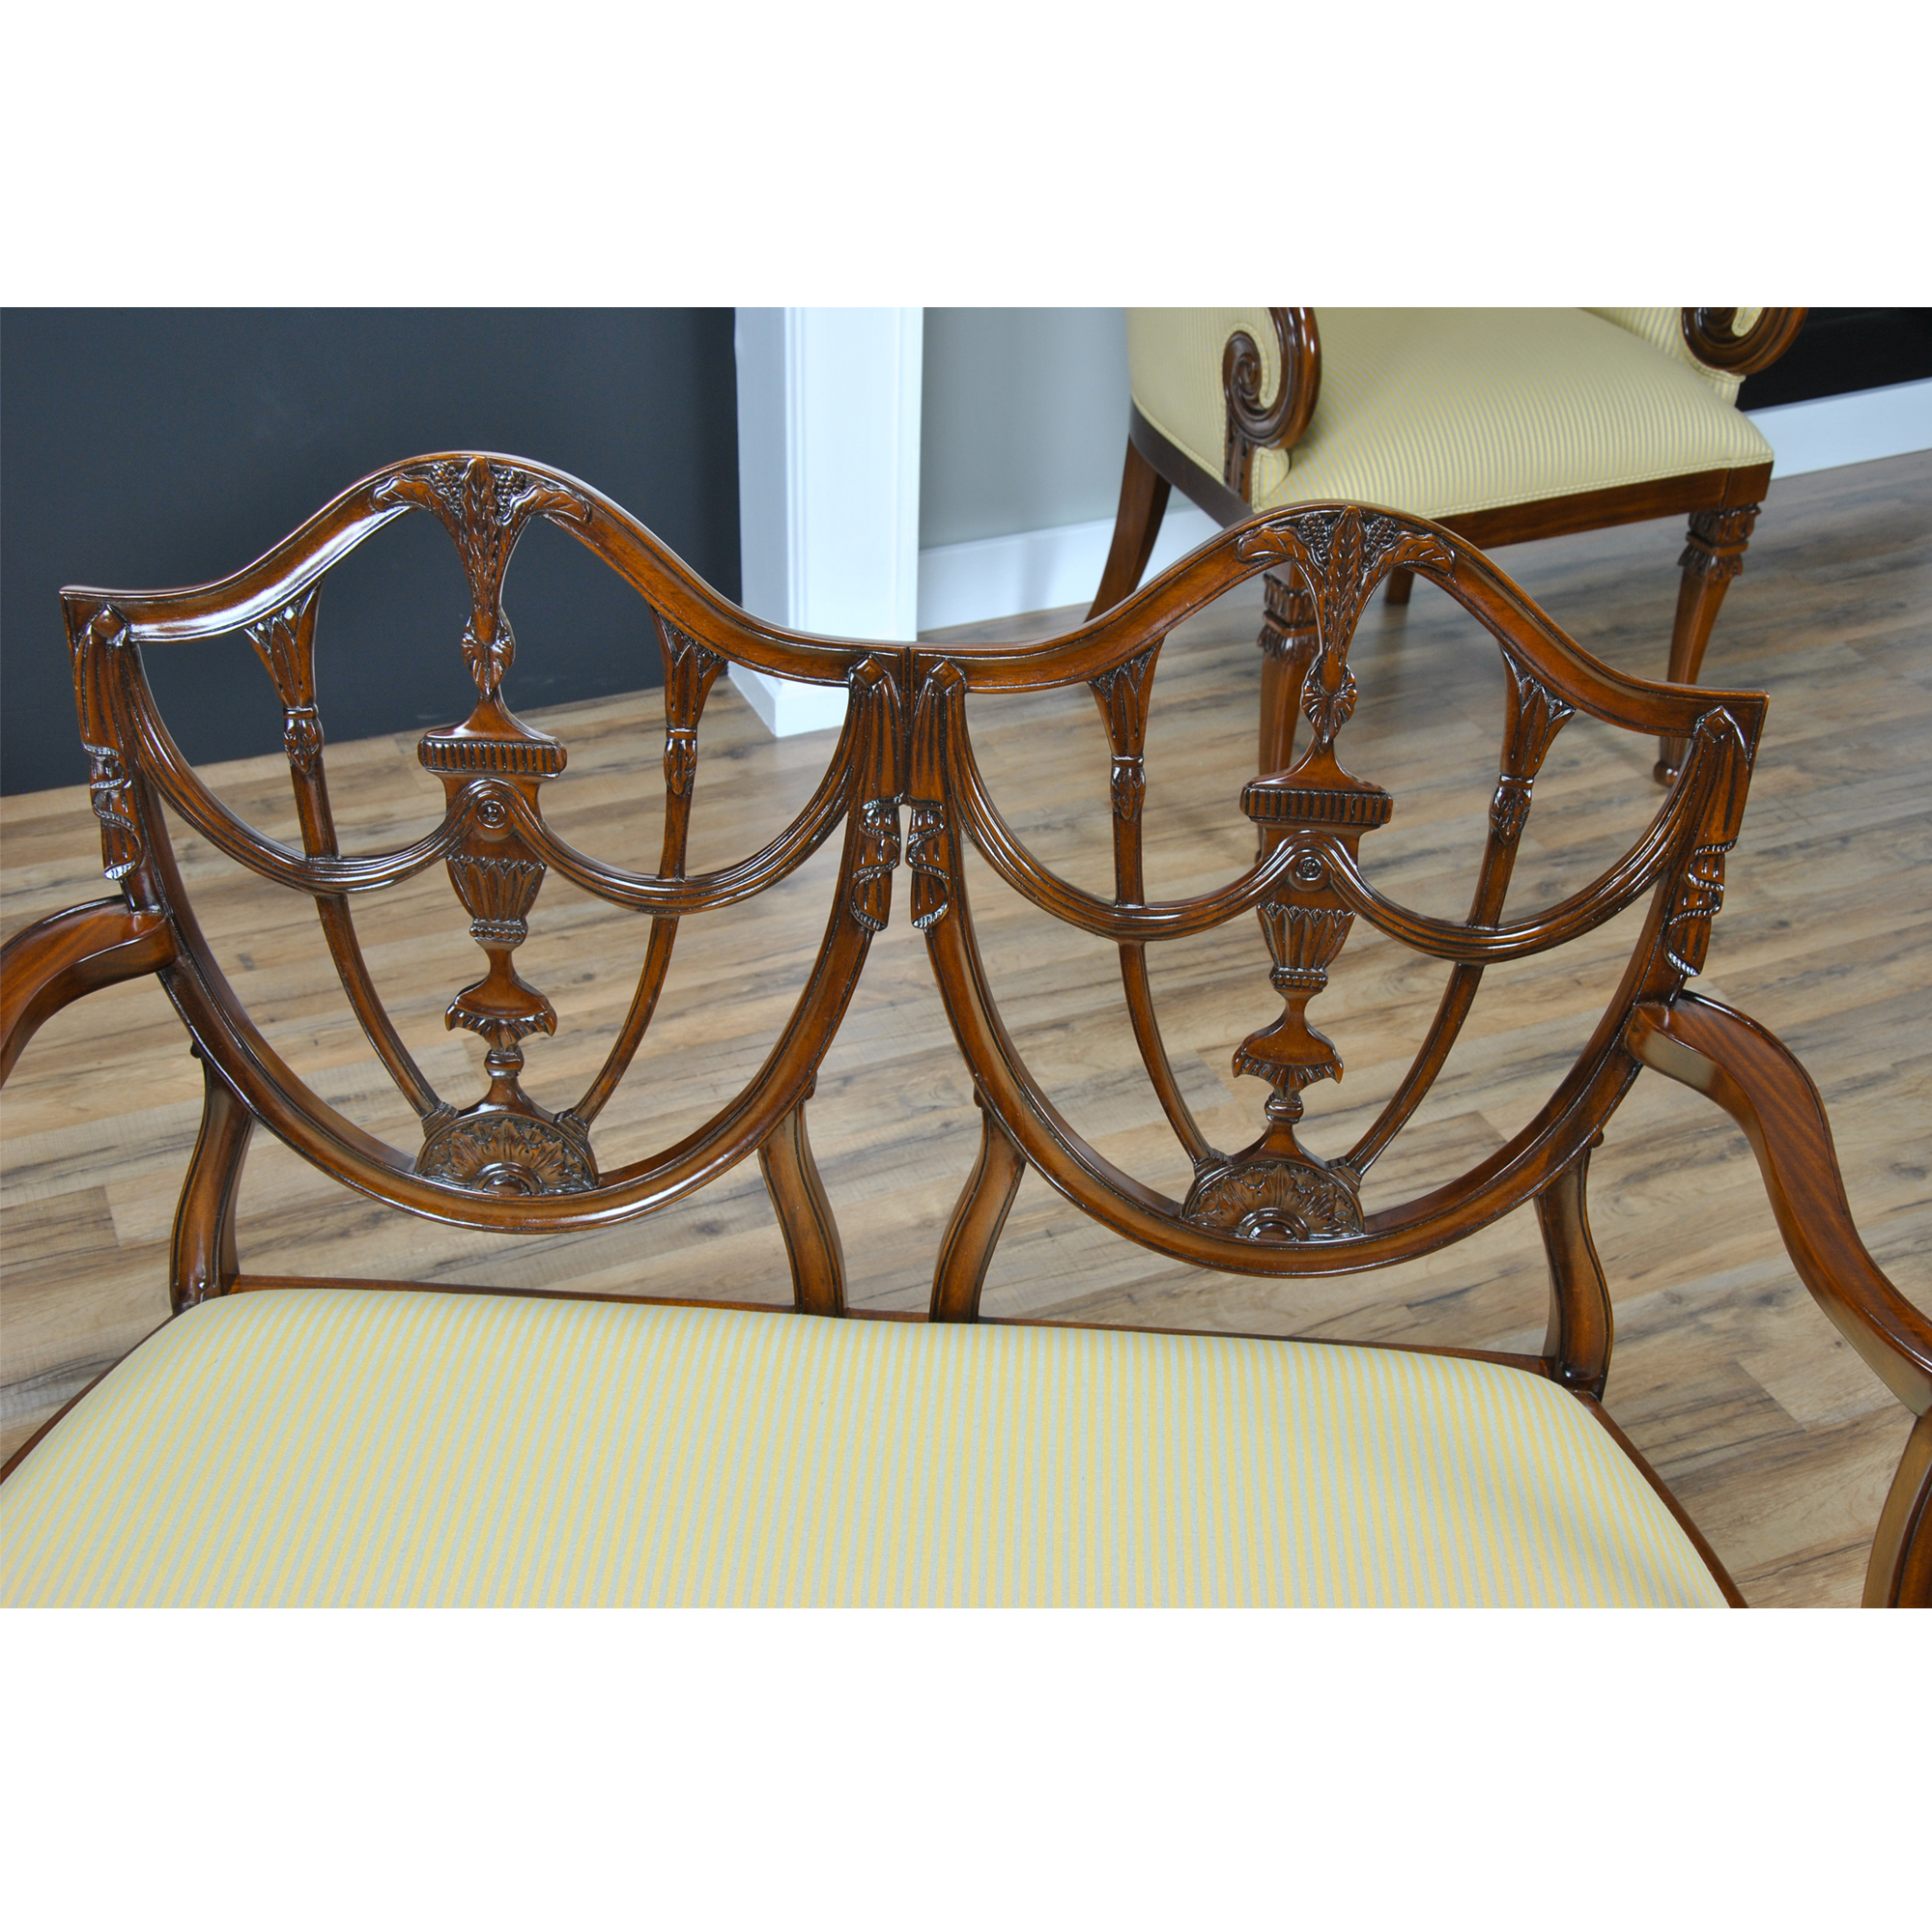 2 seater love chair see through dining chairs shield back two seat niagara furniture